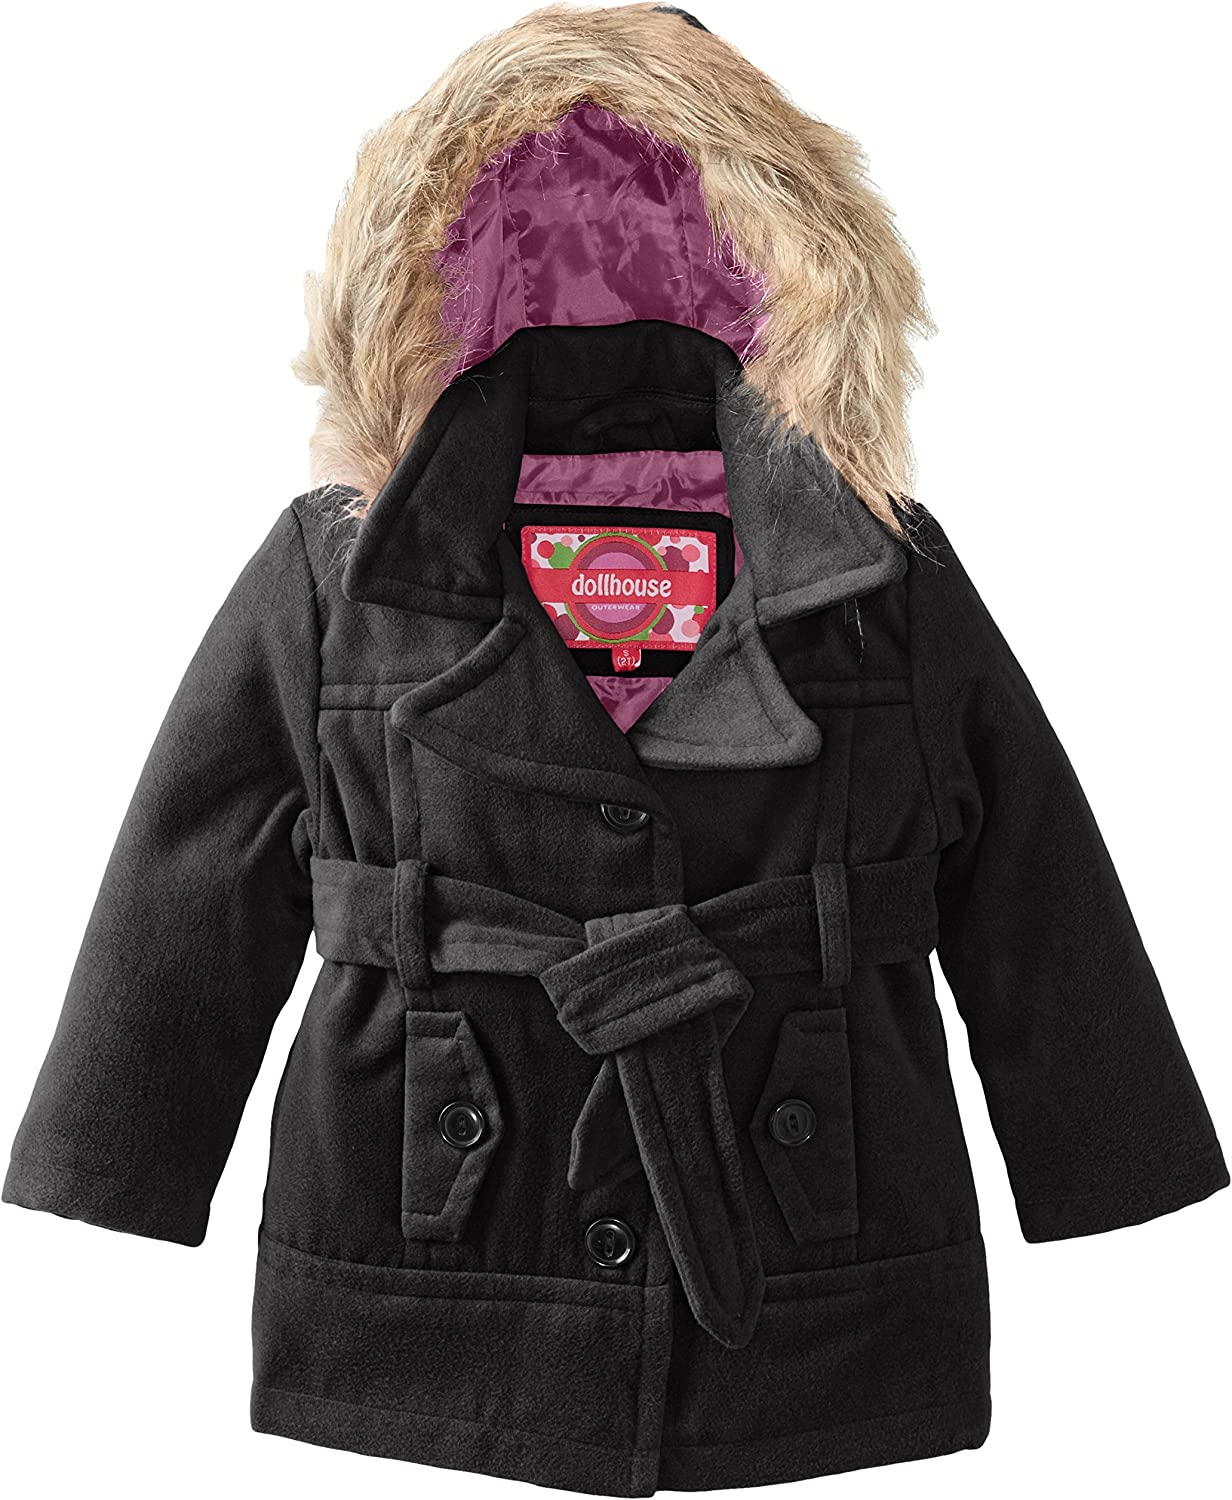 Dollhouse Little Girls' Belted Coat with Faux Fur Hood